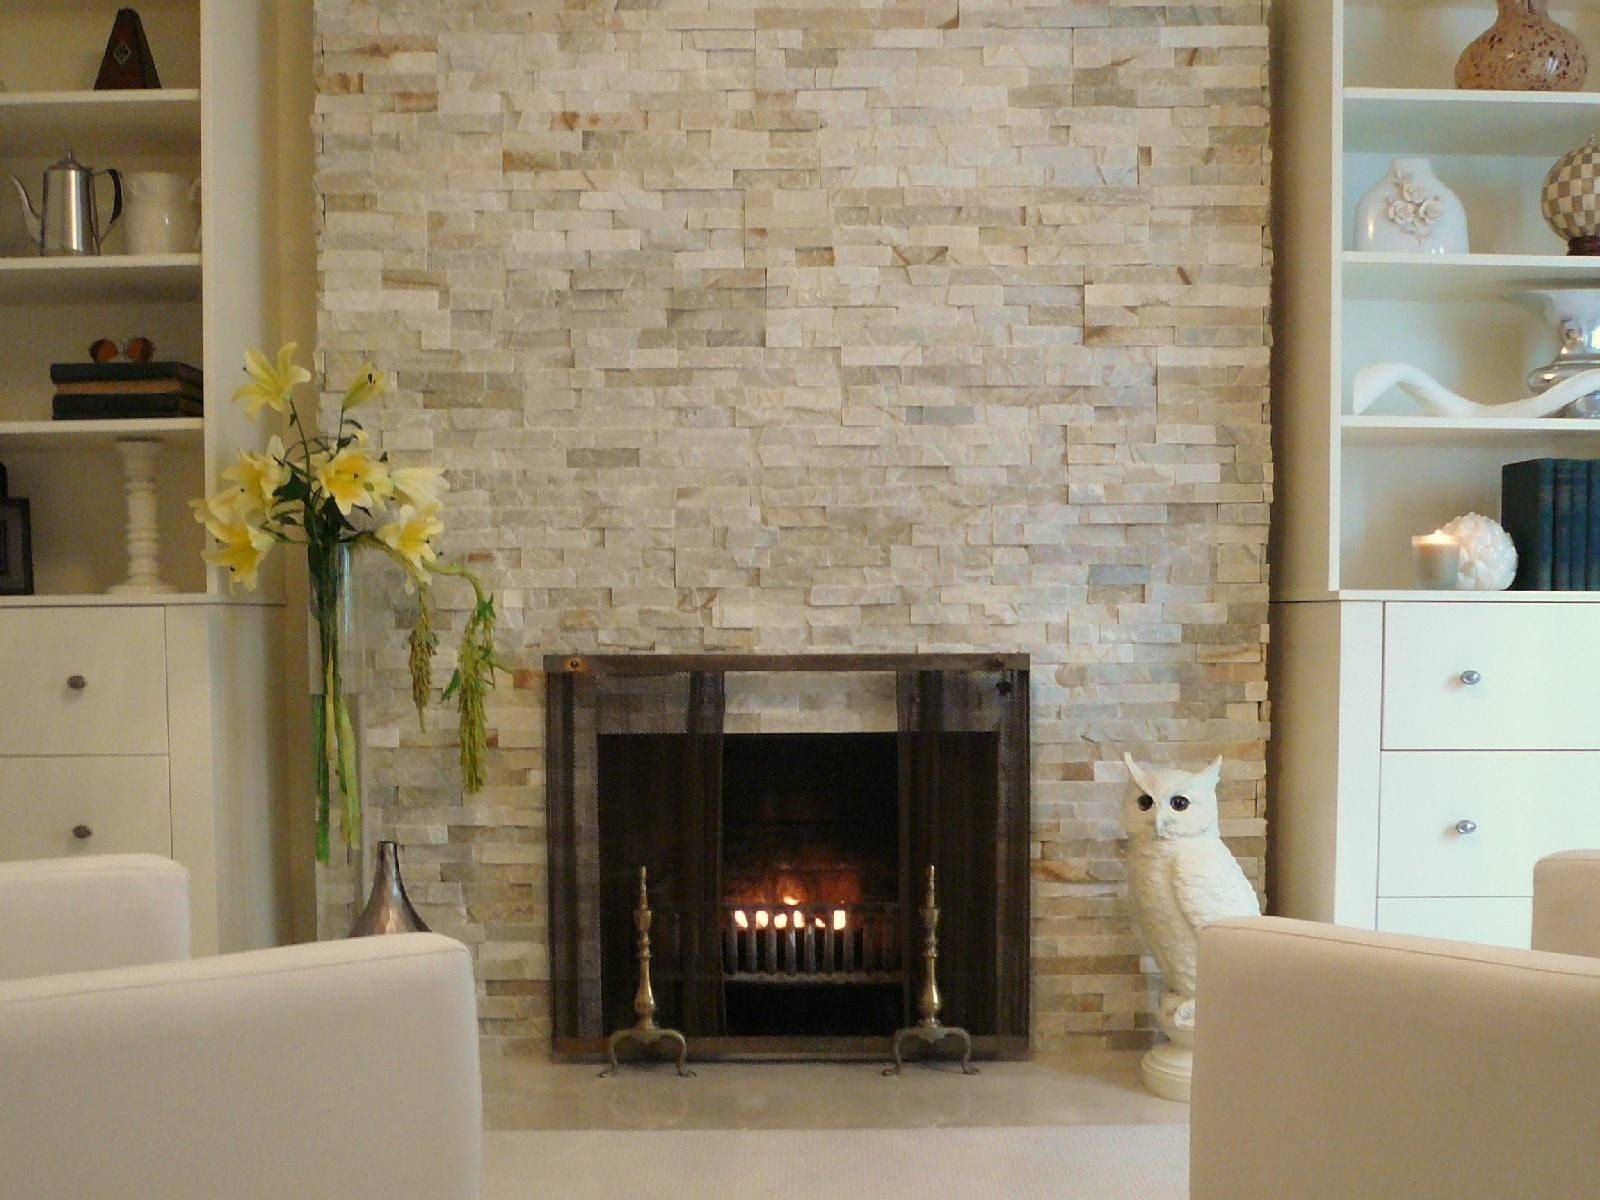 awesome fireplace surround ideas for your family room decor ideas interesting marble fireplace surround ideas with arm chairs for family room design